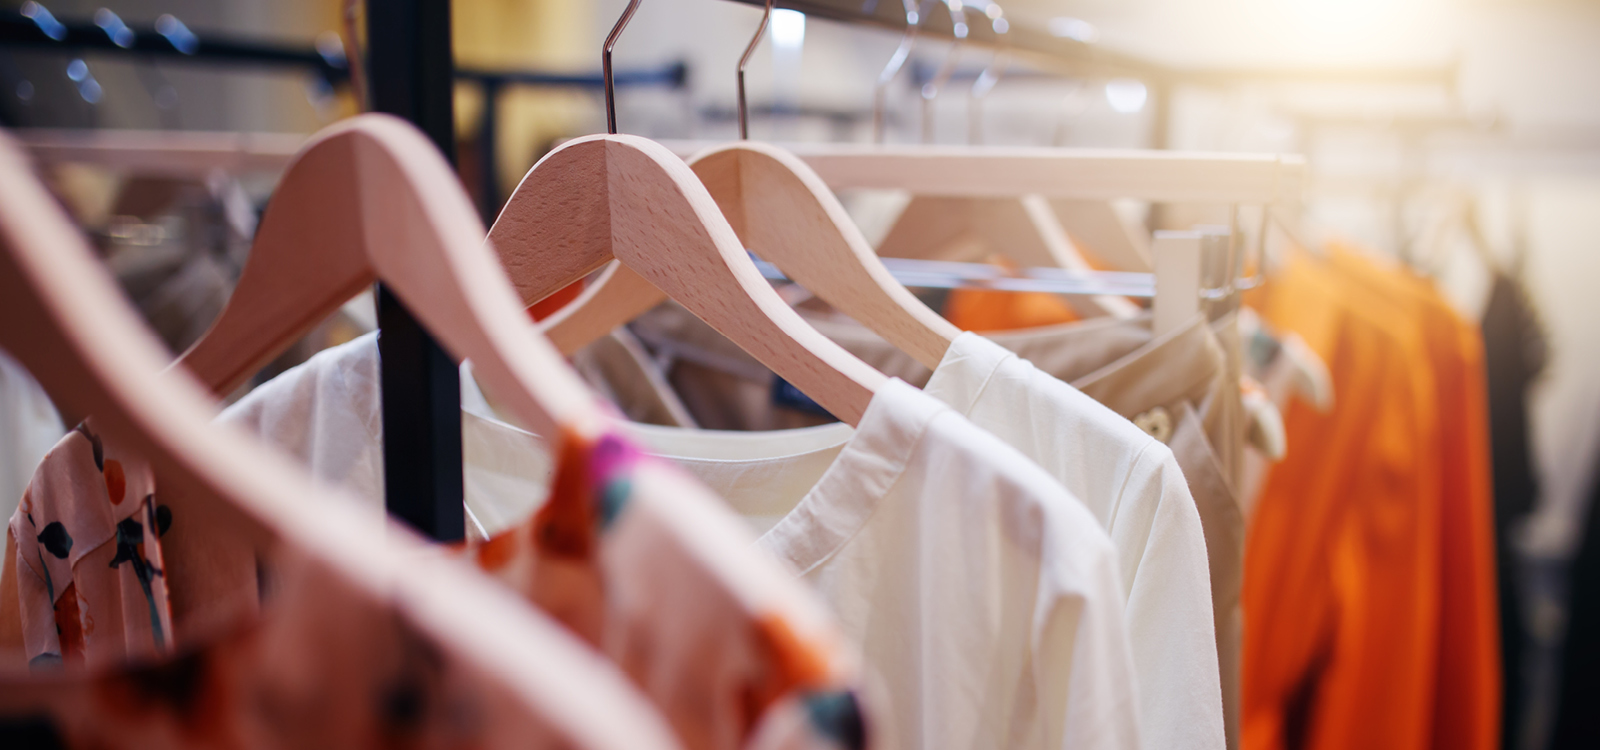 A 5-Step Playbook for Thriving as a Brick-and-Mortar Retailer (Based on Amazon, Kohl's, Macy's, Target & Walmart)